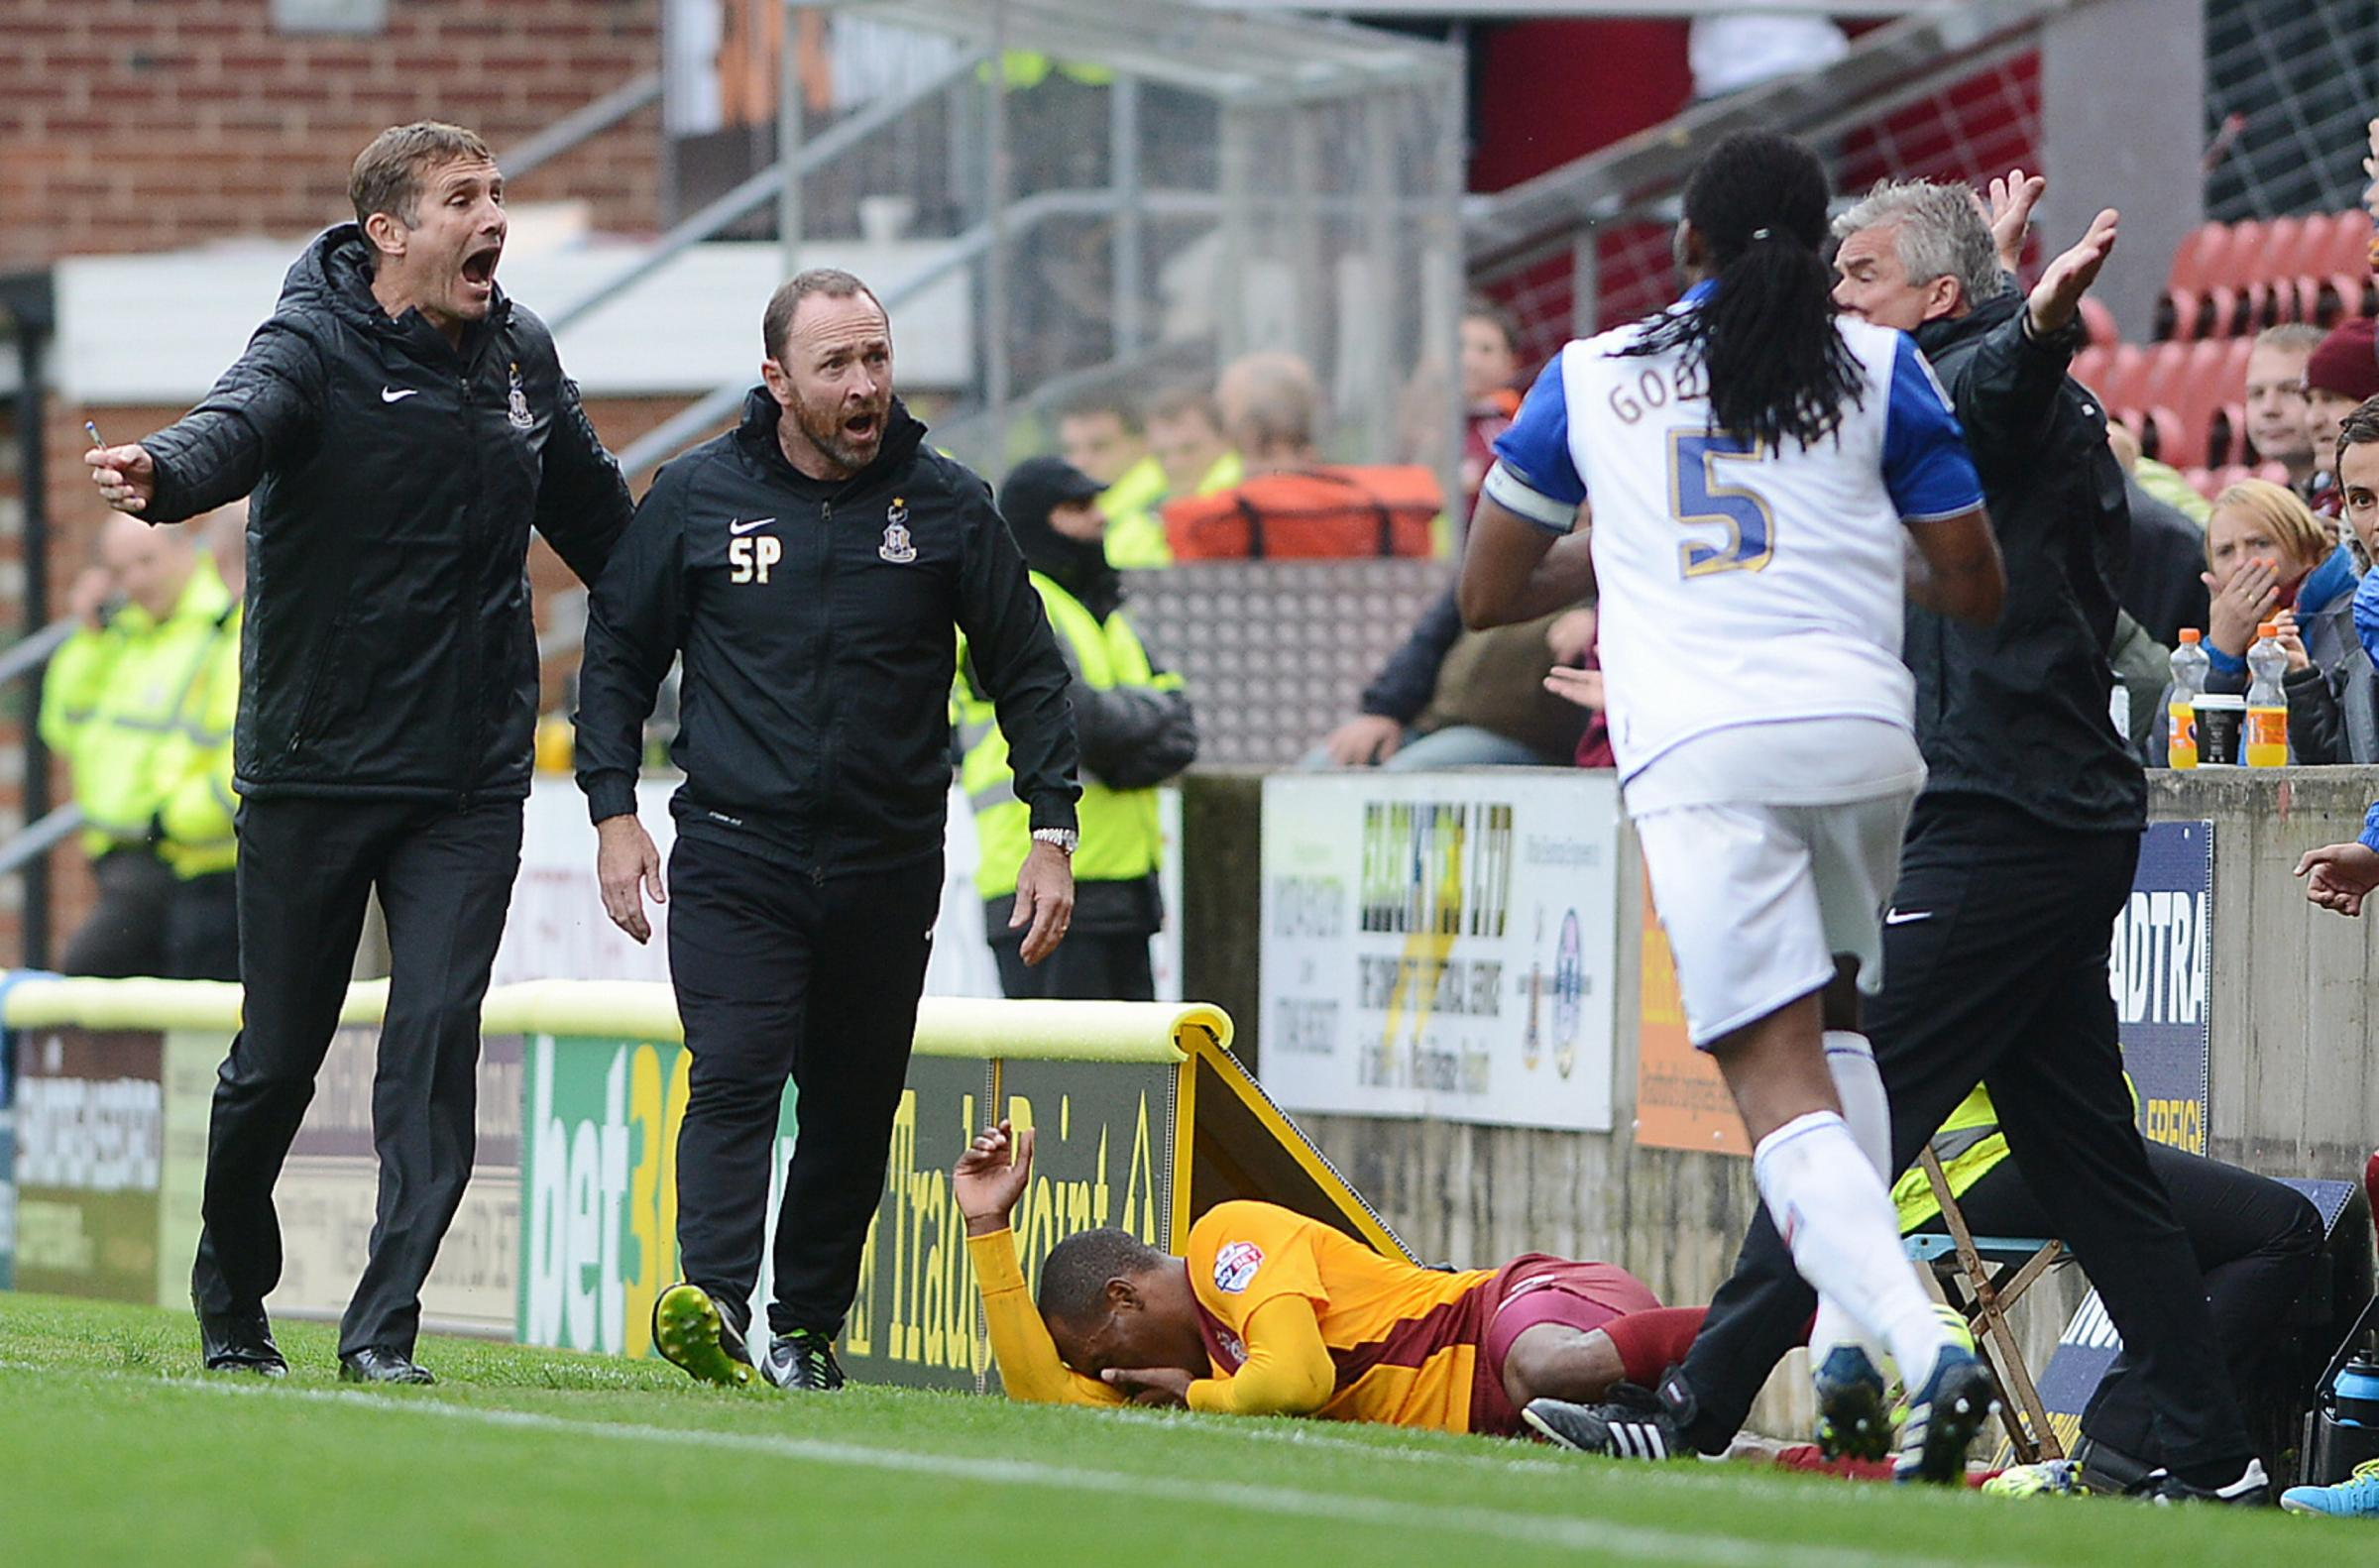 FLASHBACK: Kyel Reid is flattened by a challenge from Ian Goodison which left City's management furious when the sides met at Valley Parade last October. The defender escaped with a yellow card and Tranmere went on to win 1-0